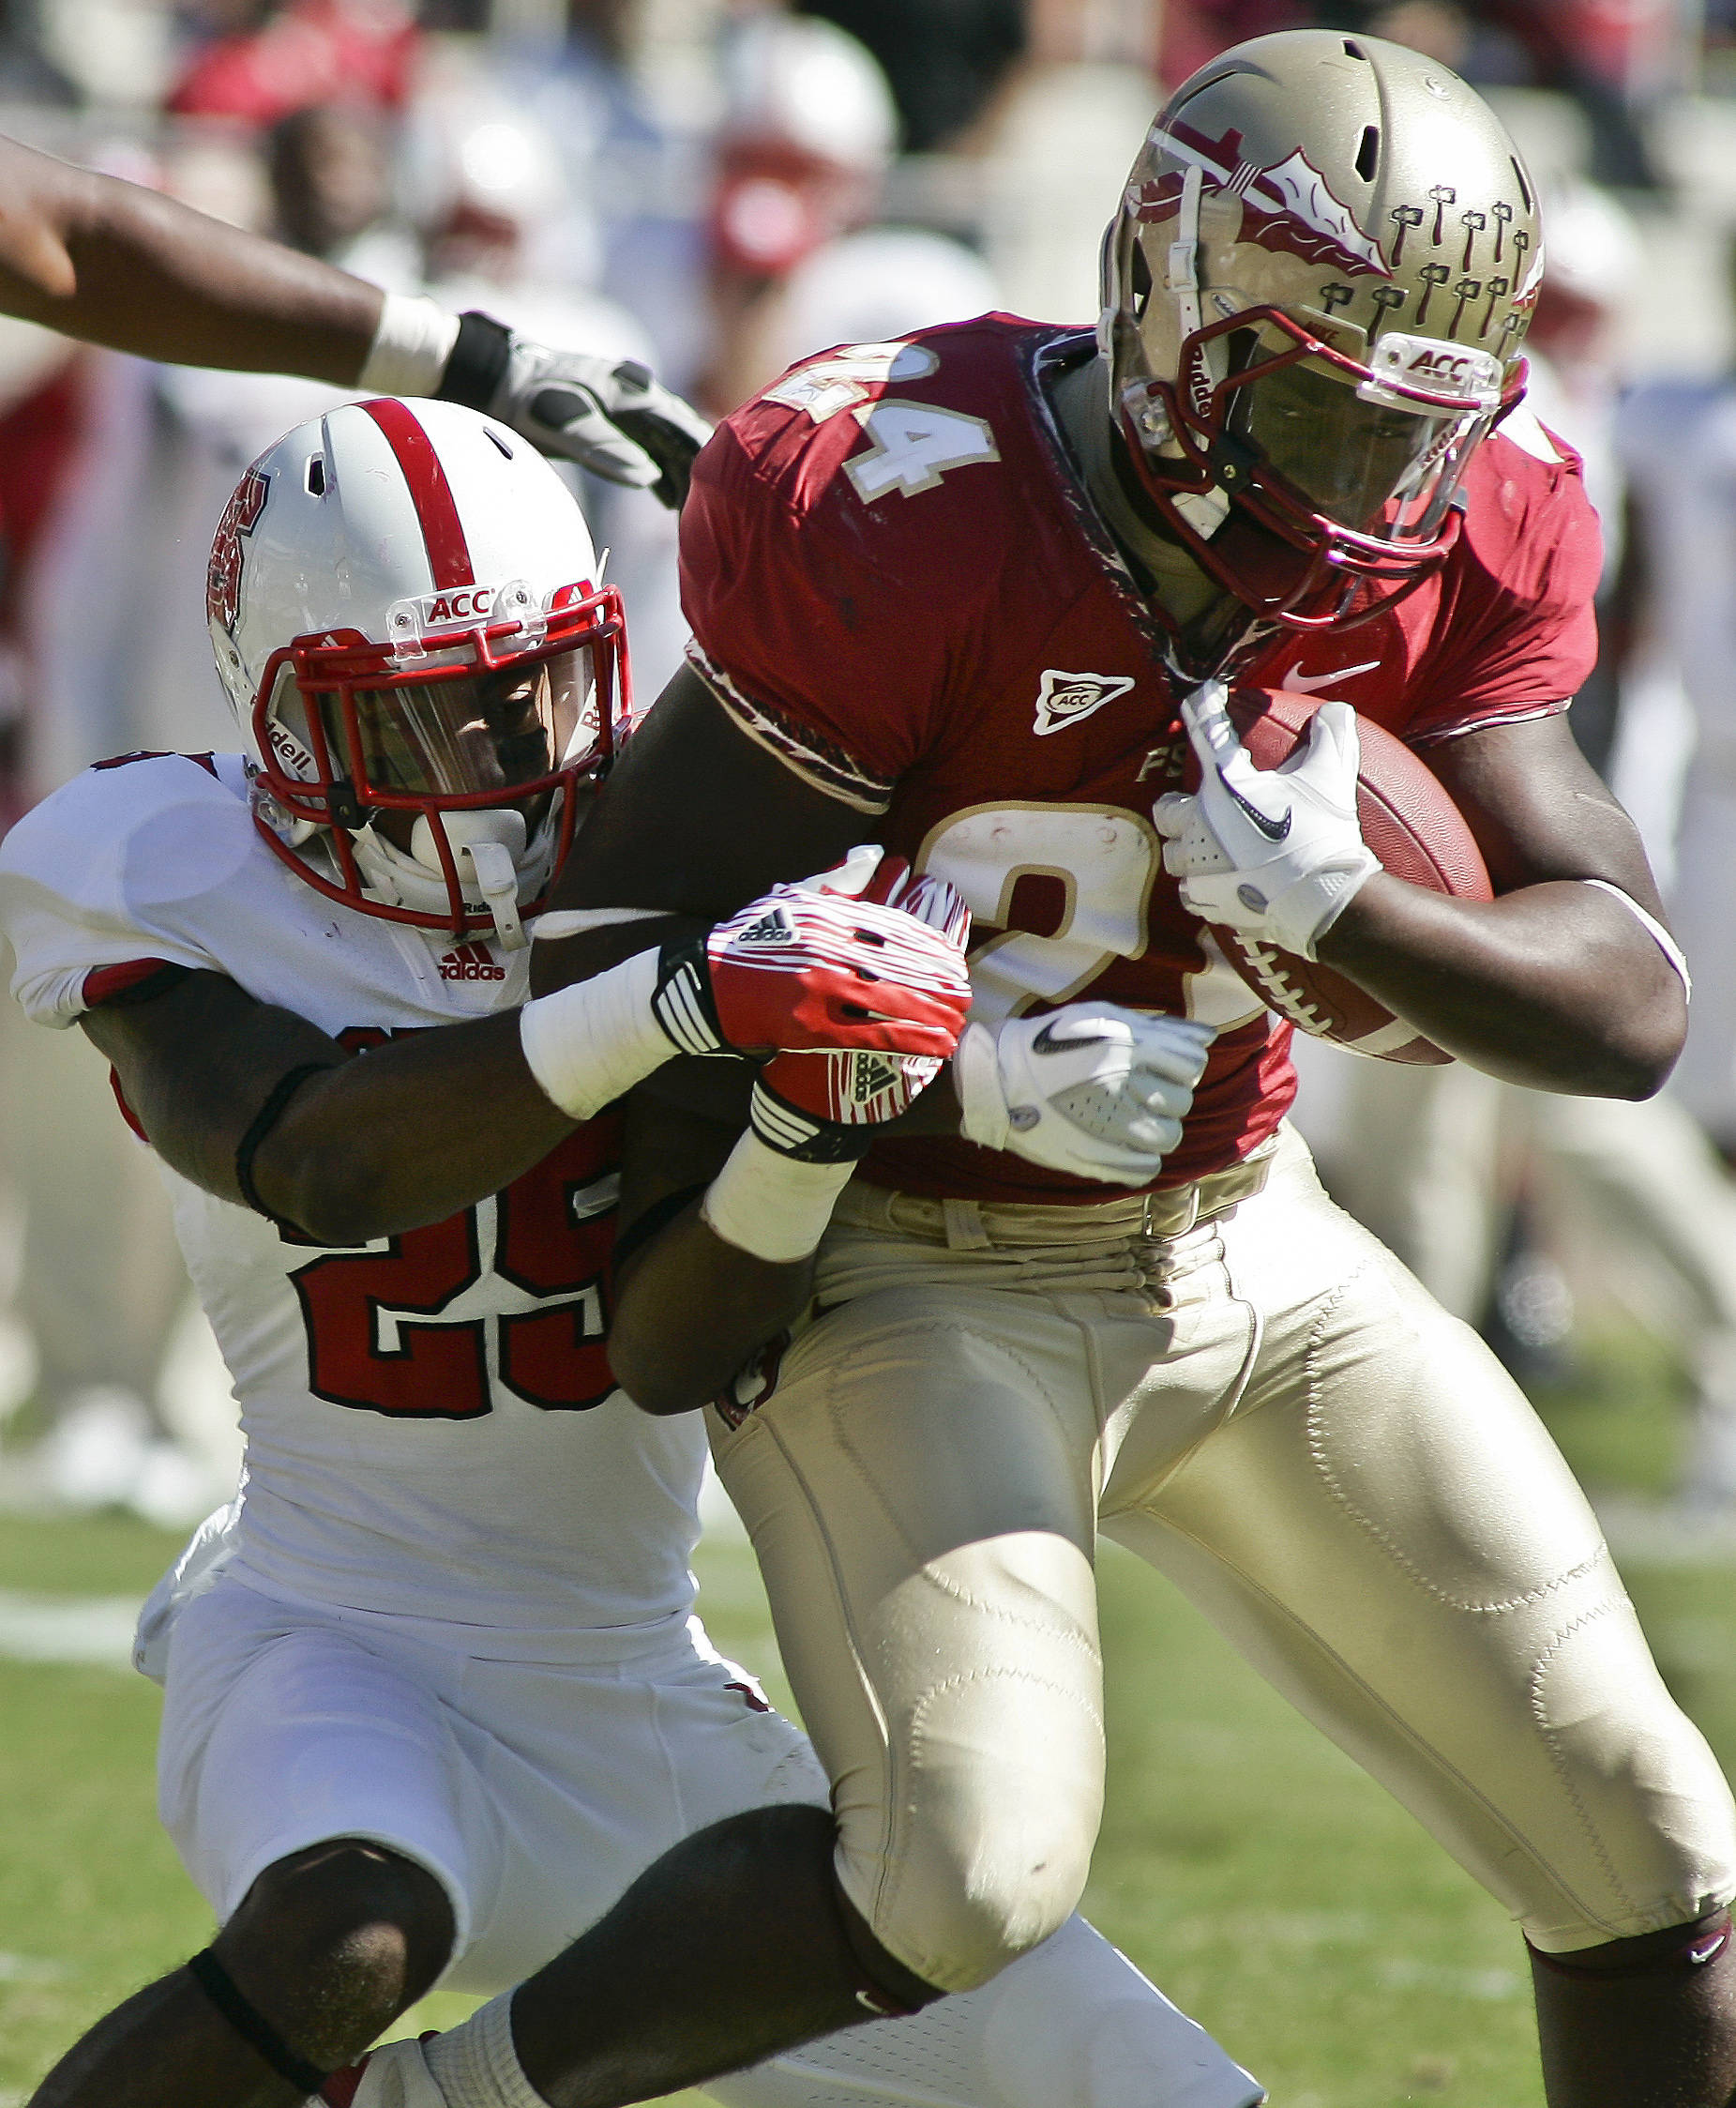 Florida State running back Lonnie Pryor (24) drags North Carolina State safety Dontae Johnson (25) as he scores on an 8-yard touchdown run in the second quarter of an NCAA college football game at Doak Campbell Stadium in Tallahassee, Fla., Saturday, Oct. 29, 2011. (AP Photo/Phil Sears)